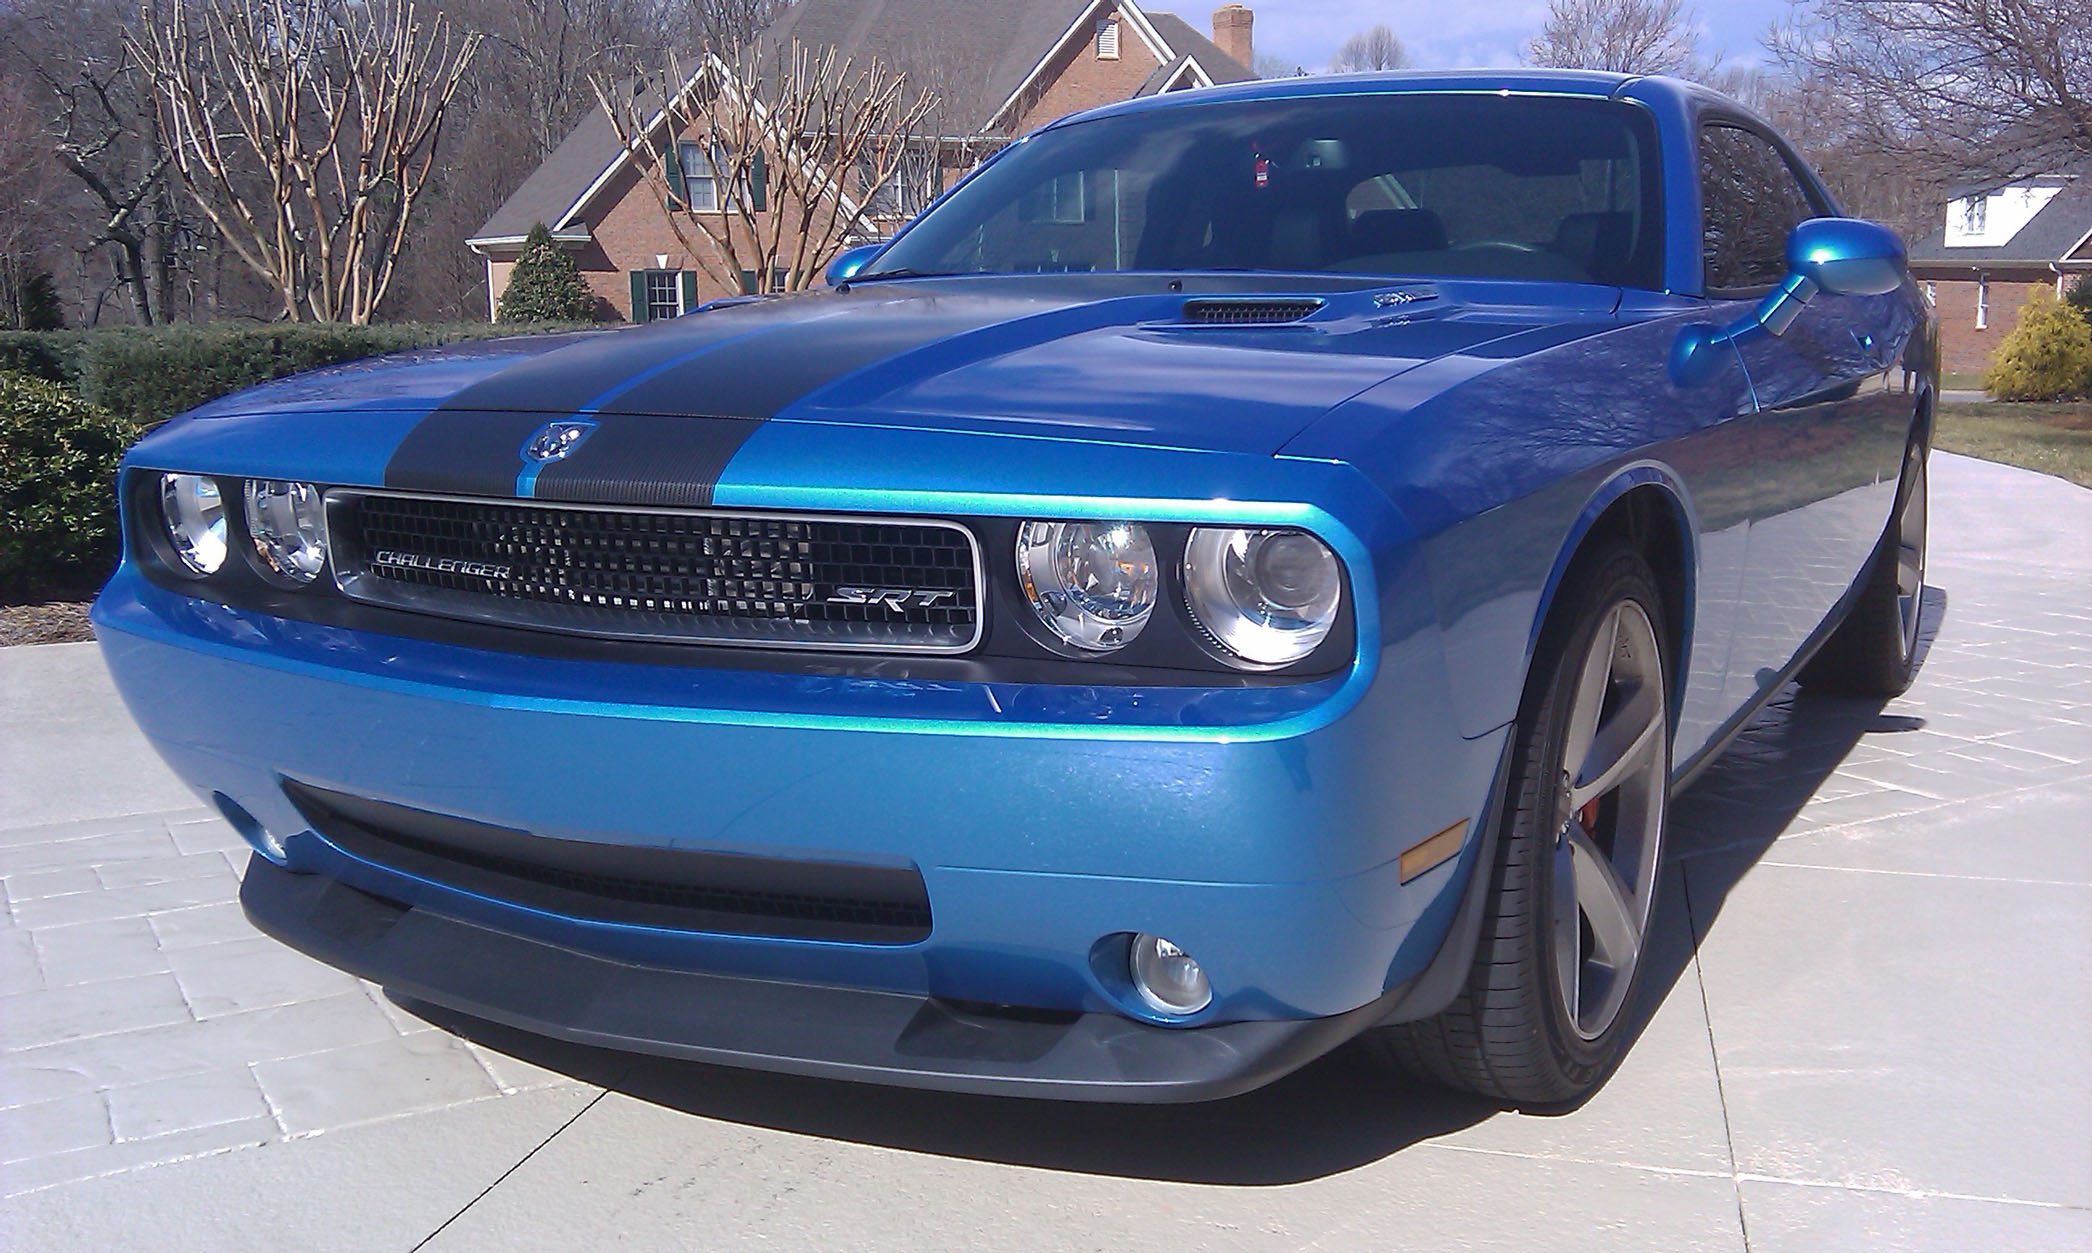 2010 dodge challenger srt8 b5 blue supercharger 1 8 mile. Black Bedroom Furniture Sets. Home Design Ideas